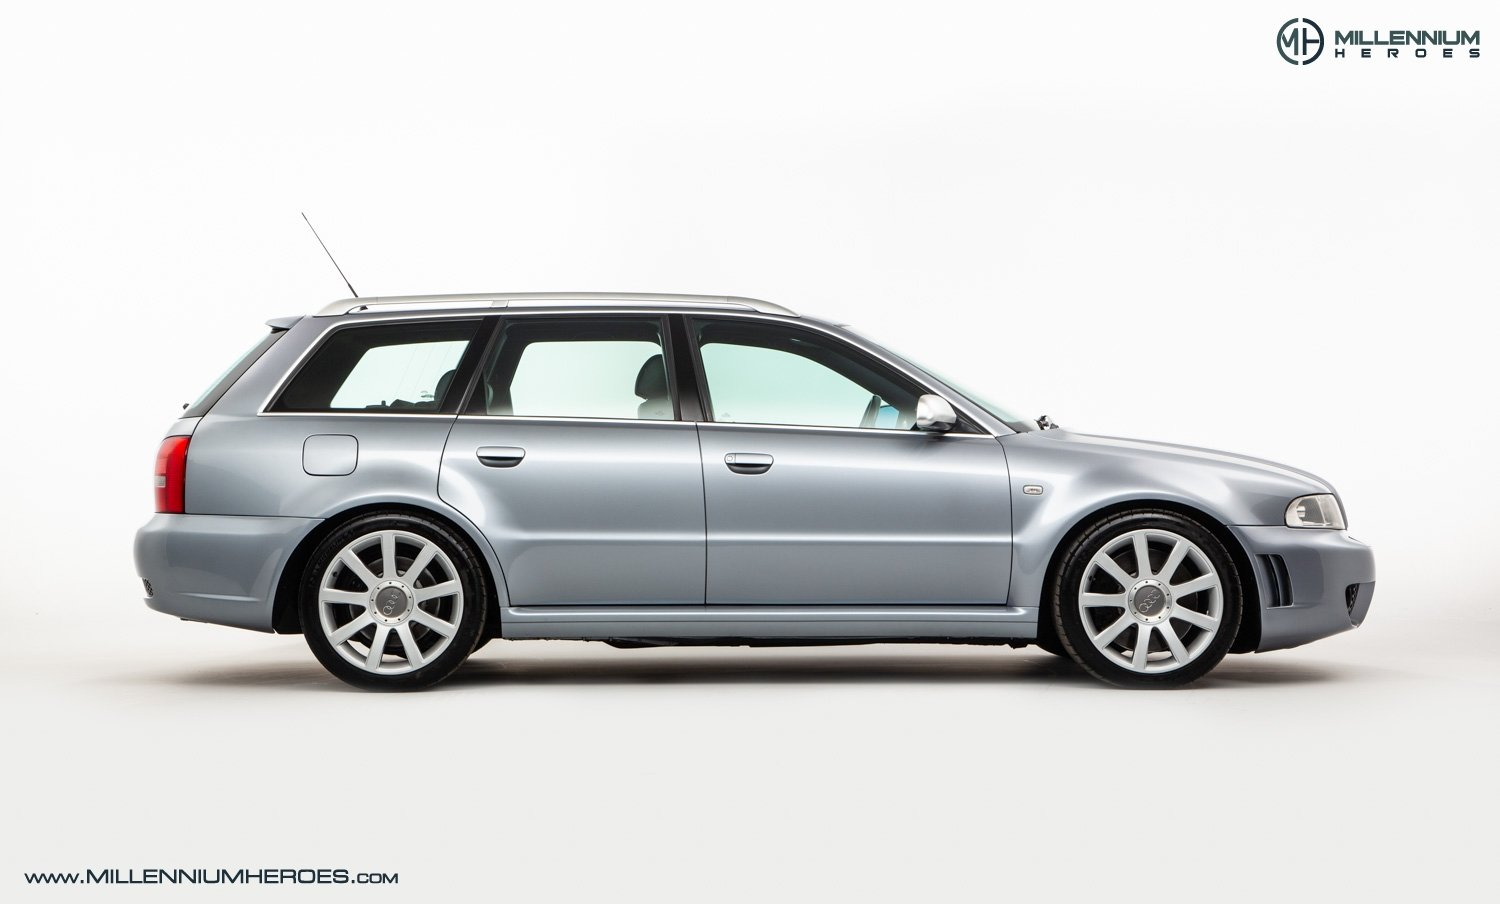 2001 AUDI B5 RS4 AVANT // 95K MILES // AVUS SILVER For Sale (picture 7 of 28)